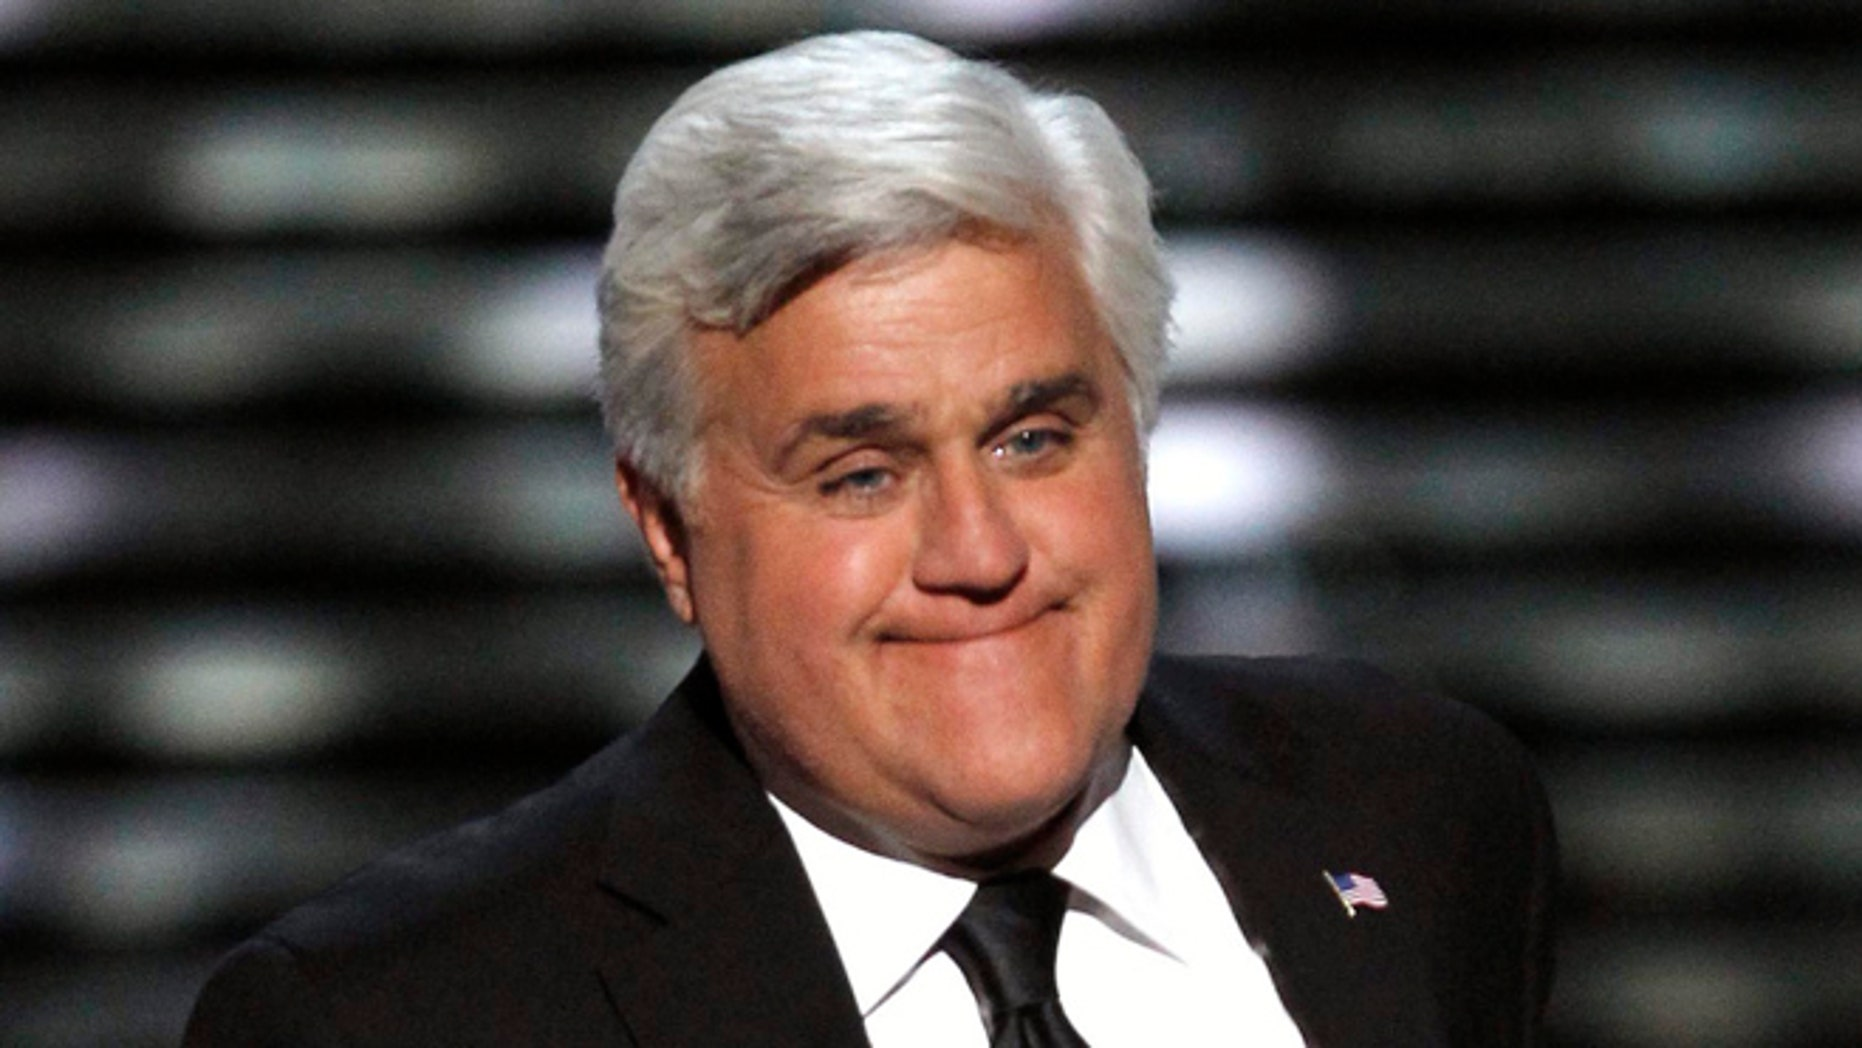 July 13, 2011: In this file photo, Jay Leno presents the Jimmy V Award for Perseverance at the ESPY Awards in Los Angeles.